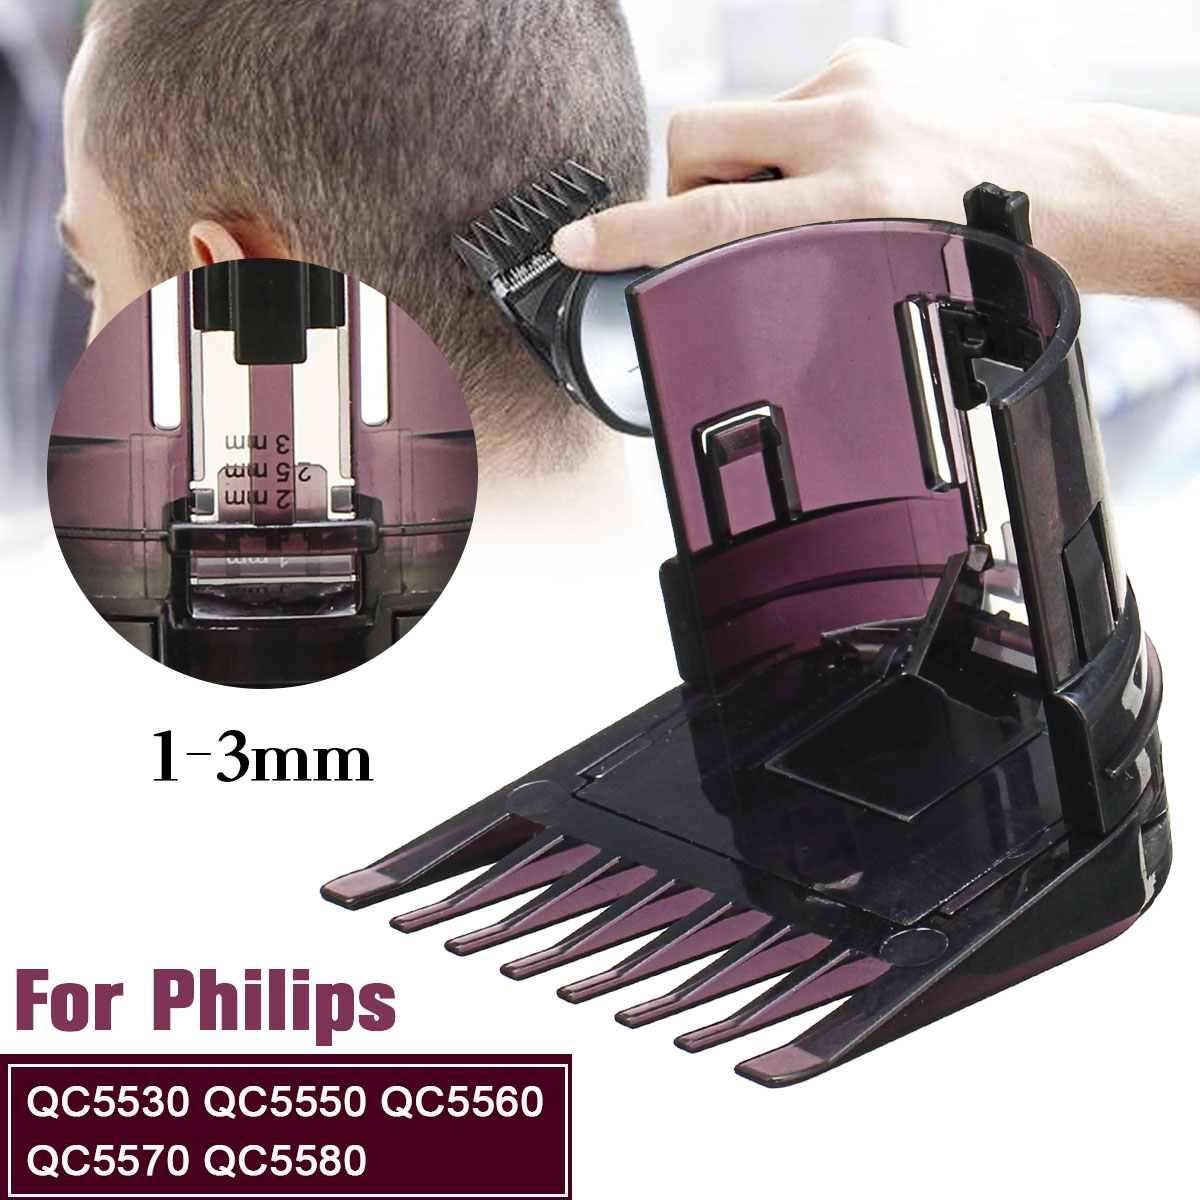 Hair Clipper Trimmer Comb For Philips COMB QC5530 QC5550 QC5560 QC5570 QC5580 1-3mm Hair Trimmer Attachment